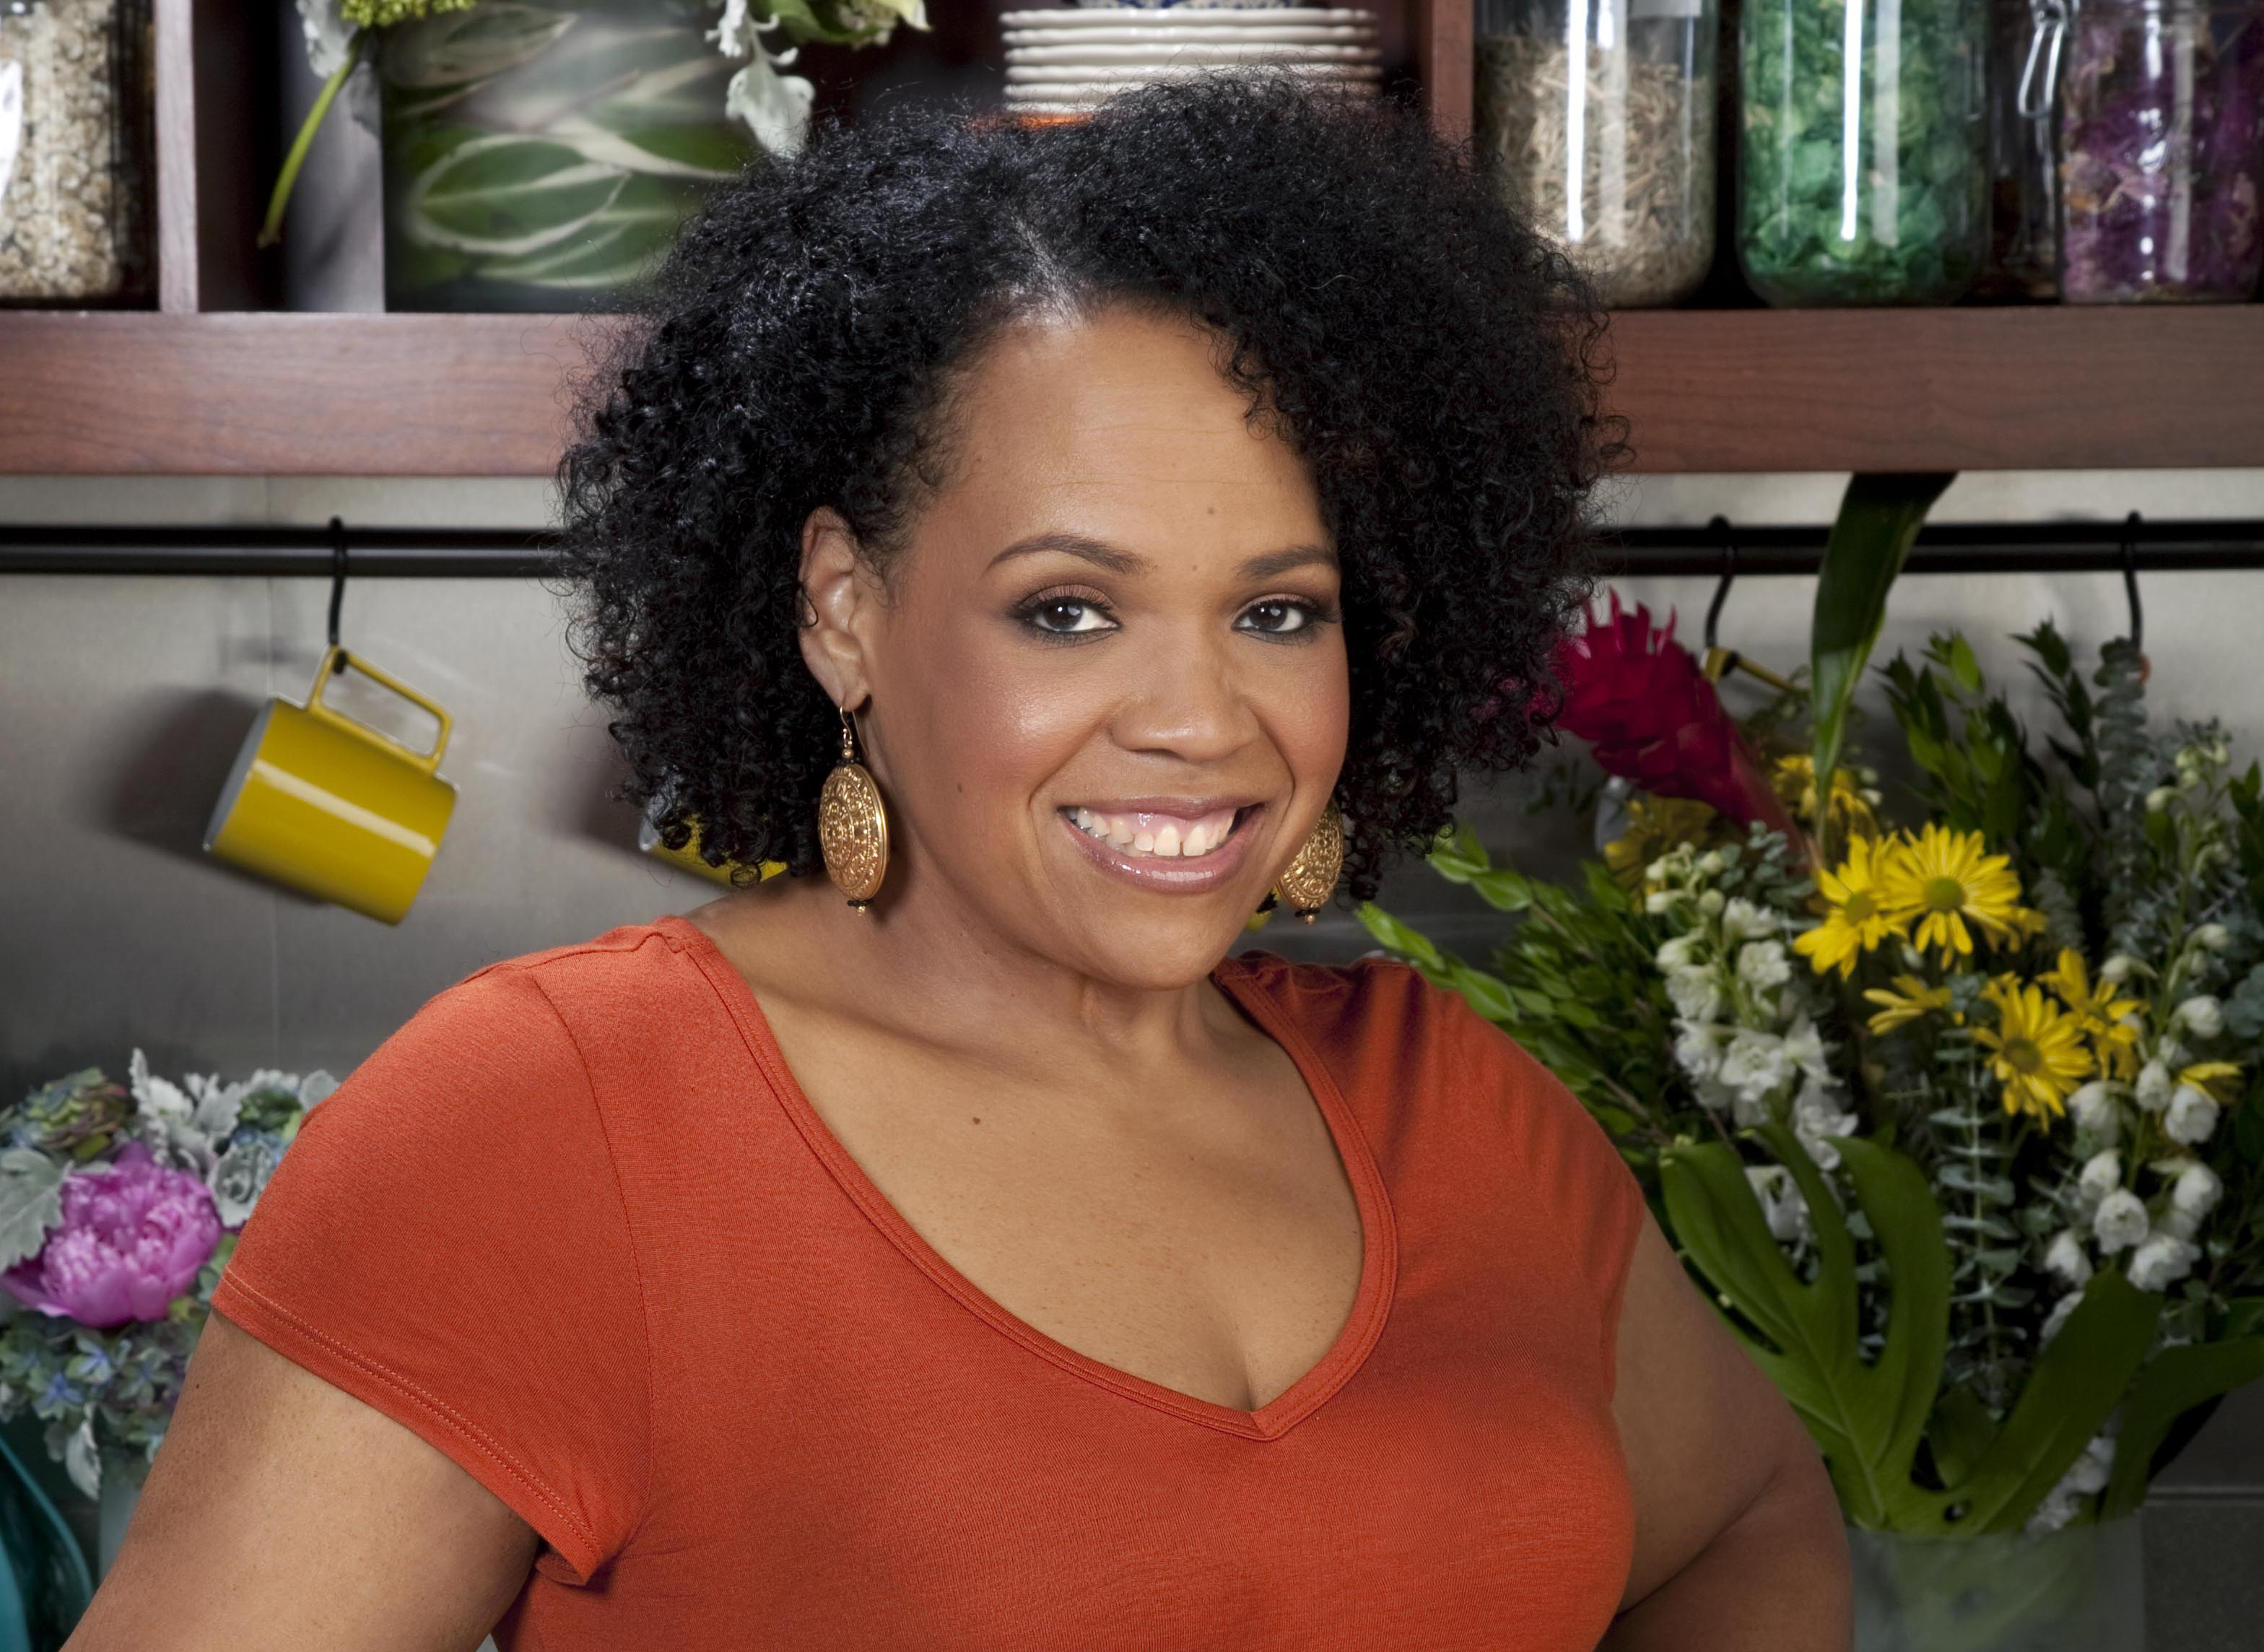 Lisa Price: From Homemade Hair Recipes to Beauty Empire